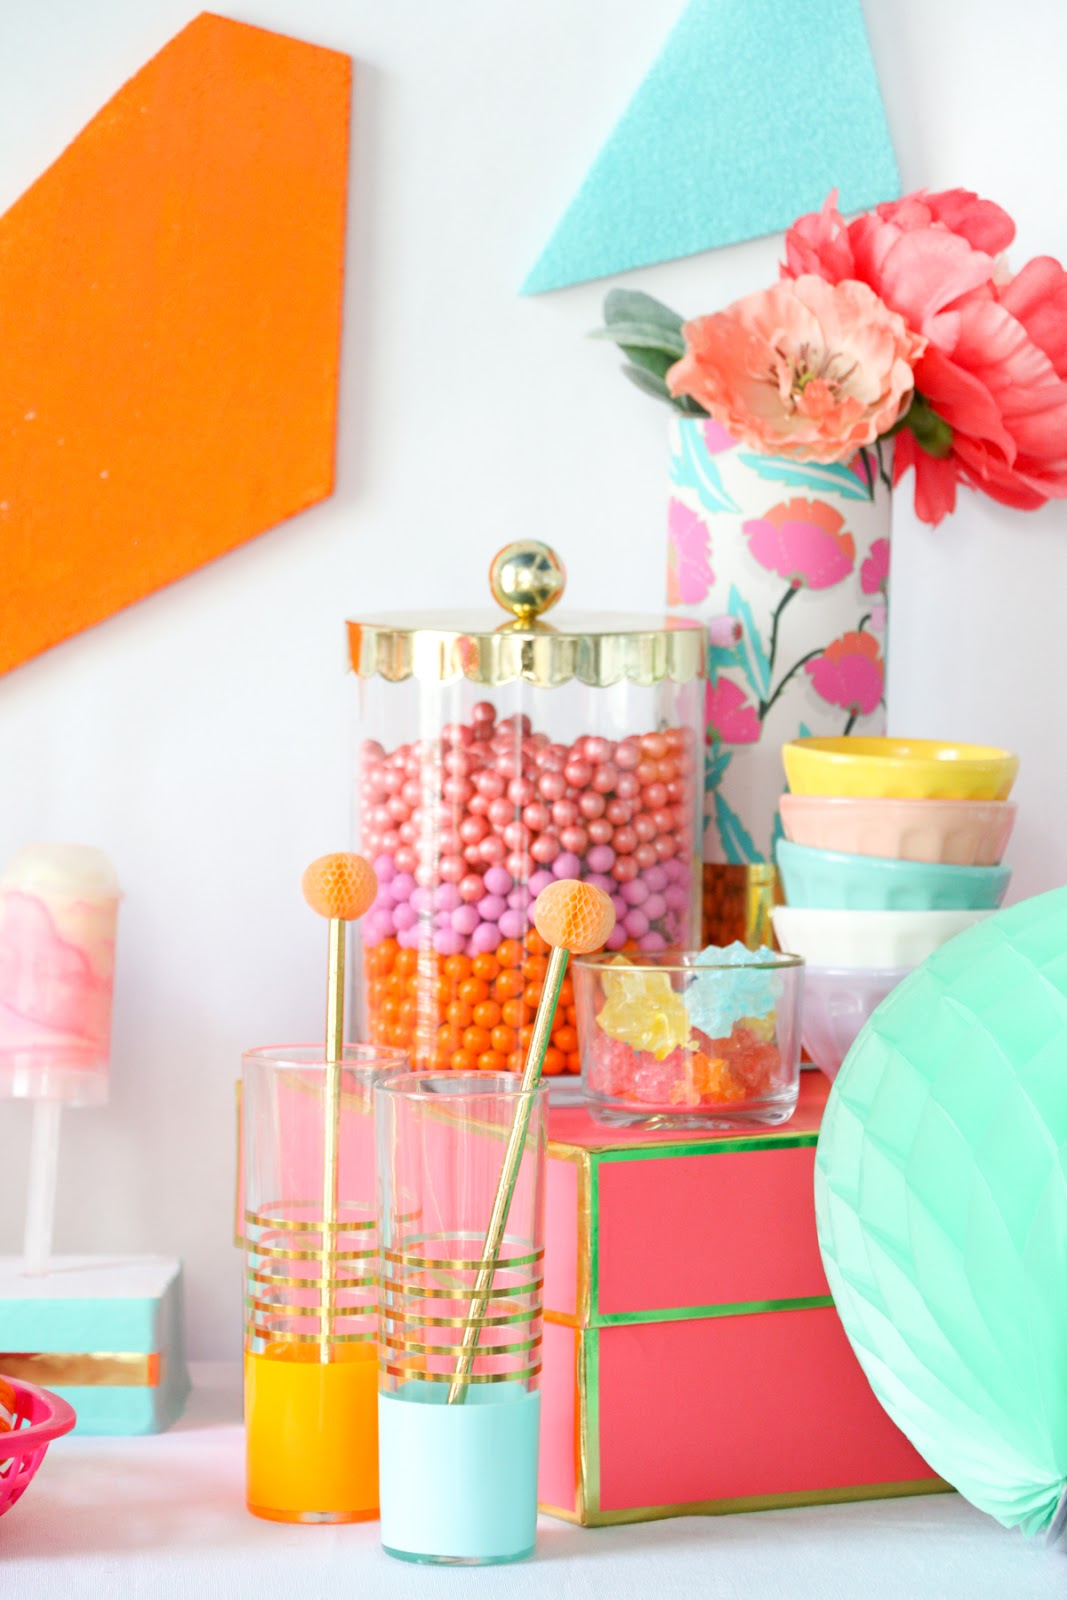 A kailo chic life decorate it a colorful dessert table - Decoratie opgeschort wc ...